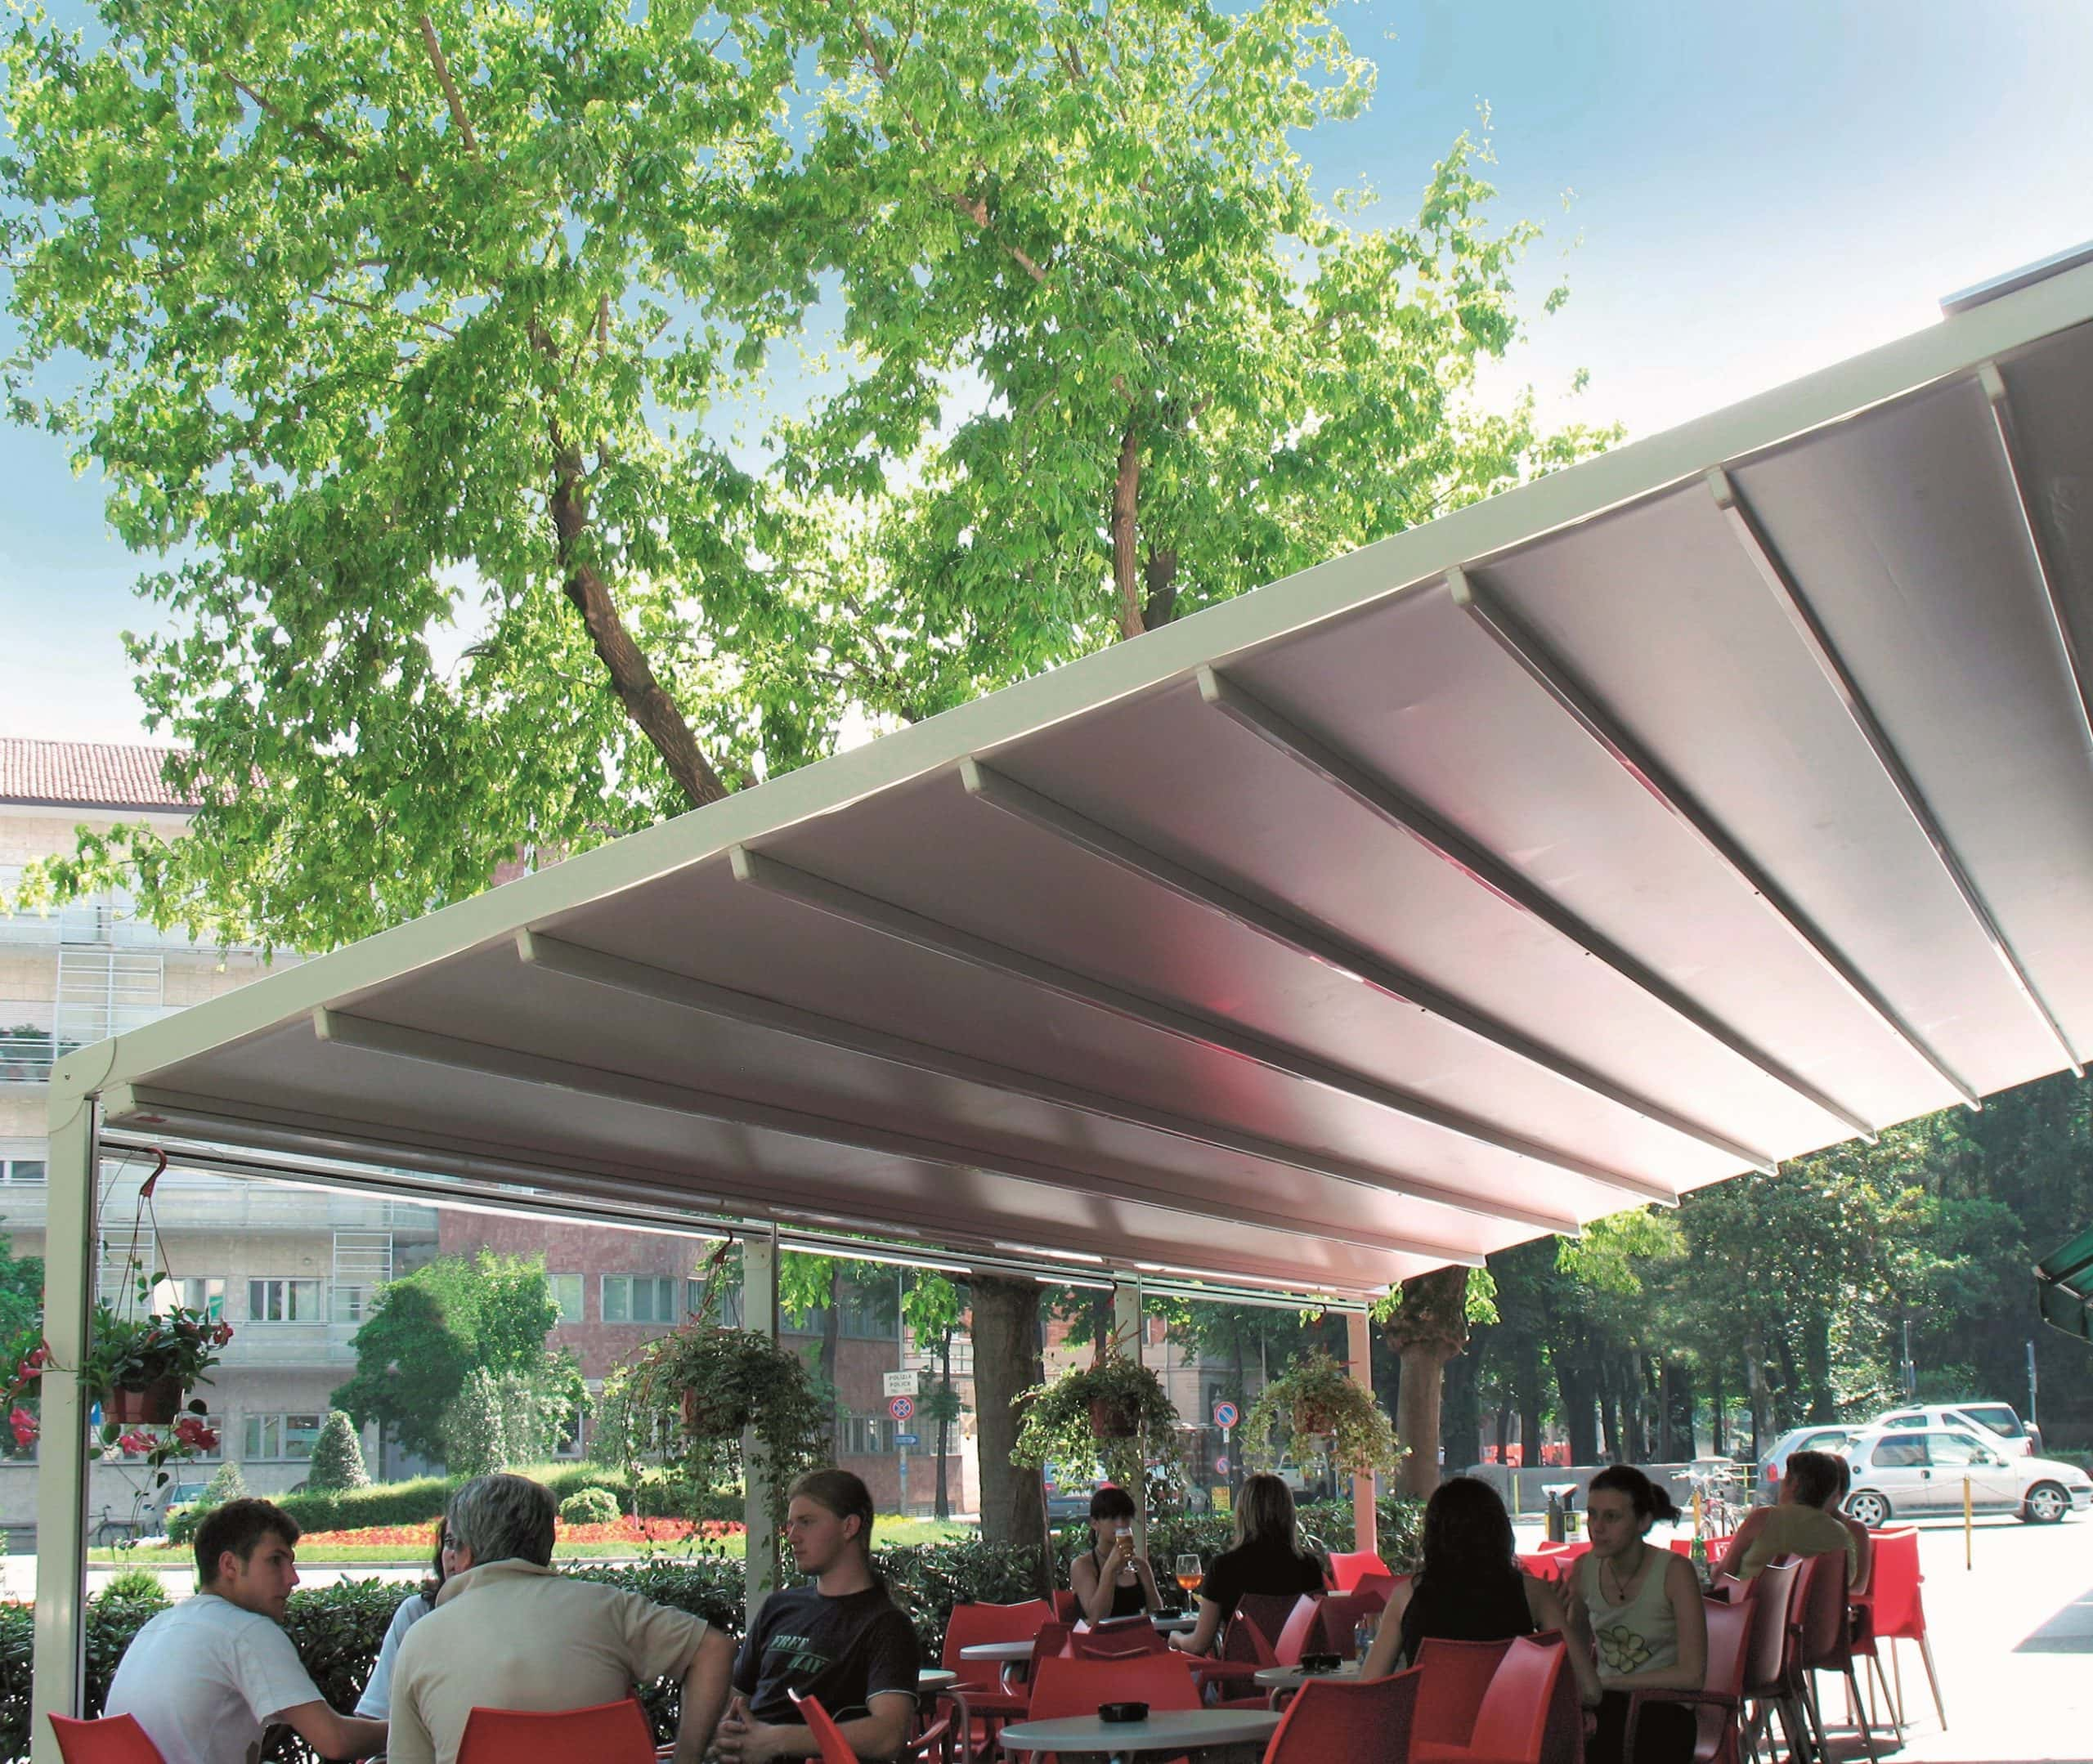 Lourve roof systems - aluminium solar shading shelter over a restaurant outdoor eating area